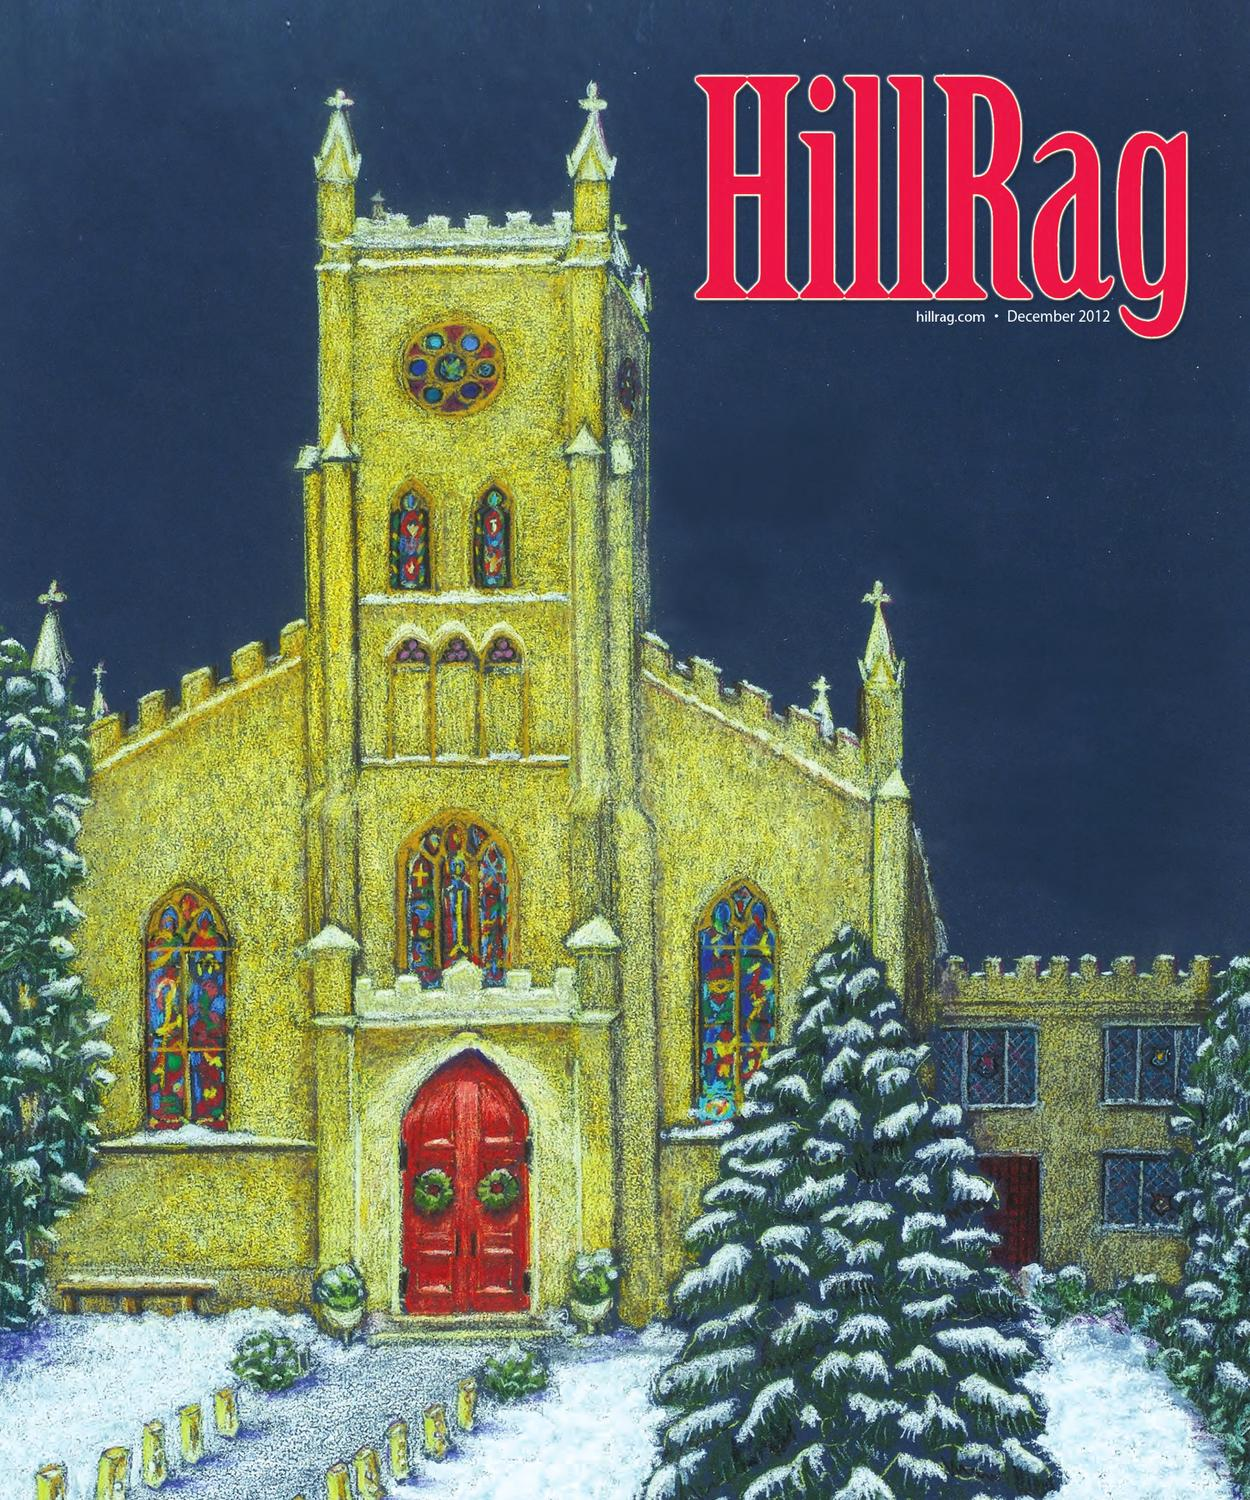 68dd06b0be8ab Hill Rag Magazine December 2012 by Capital Community News - issuu